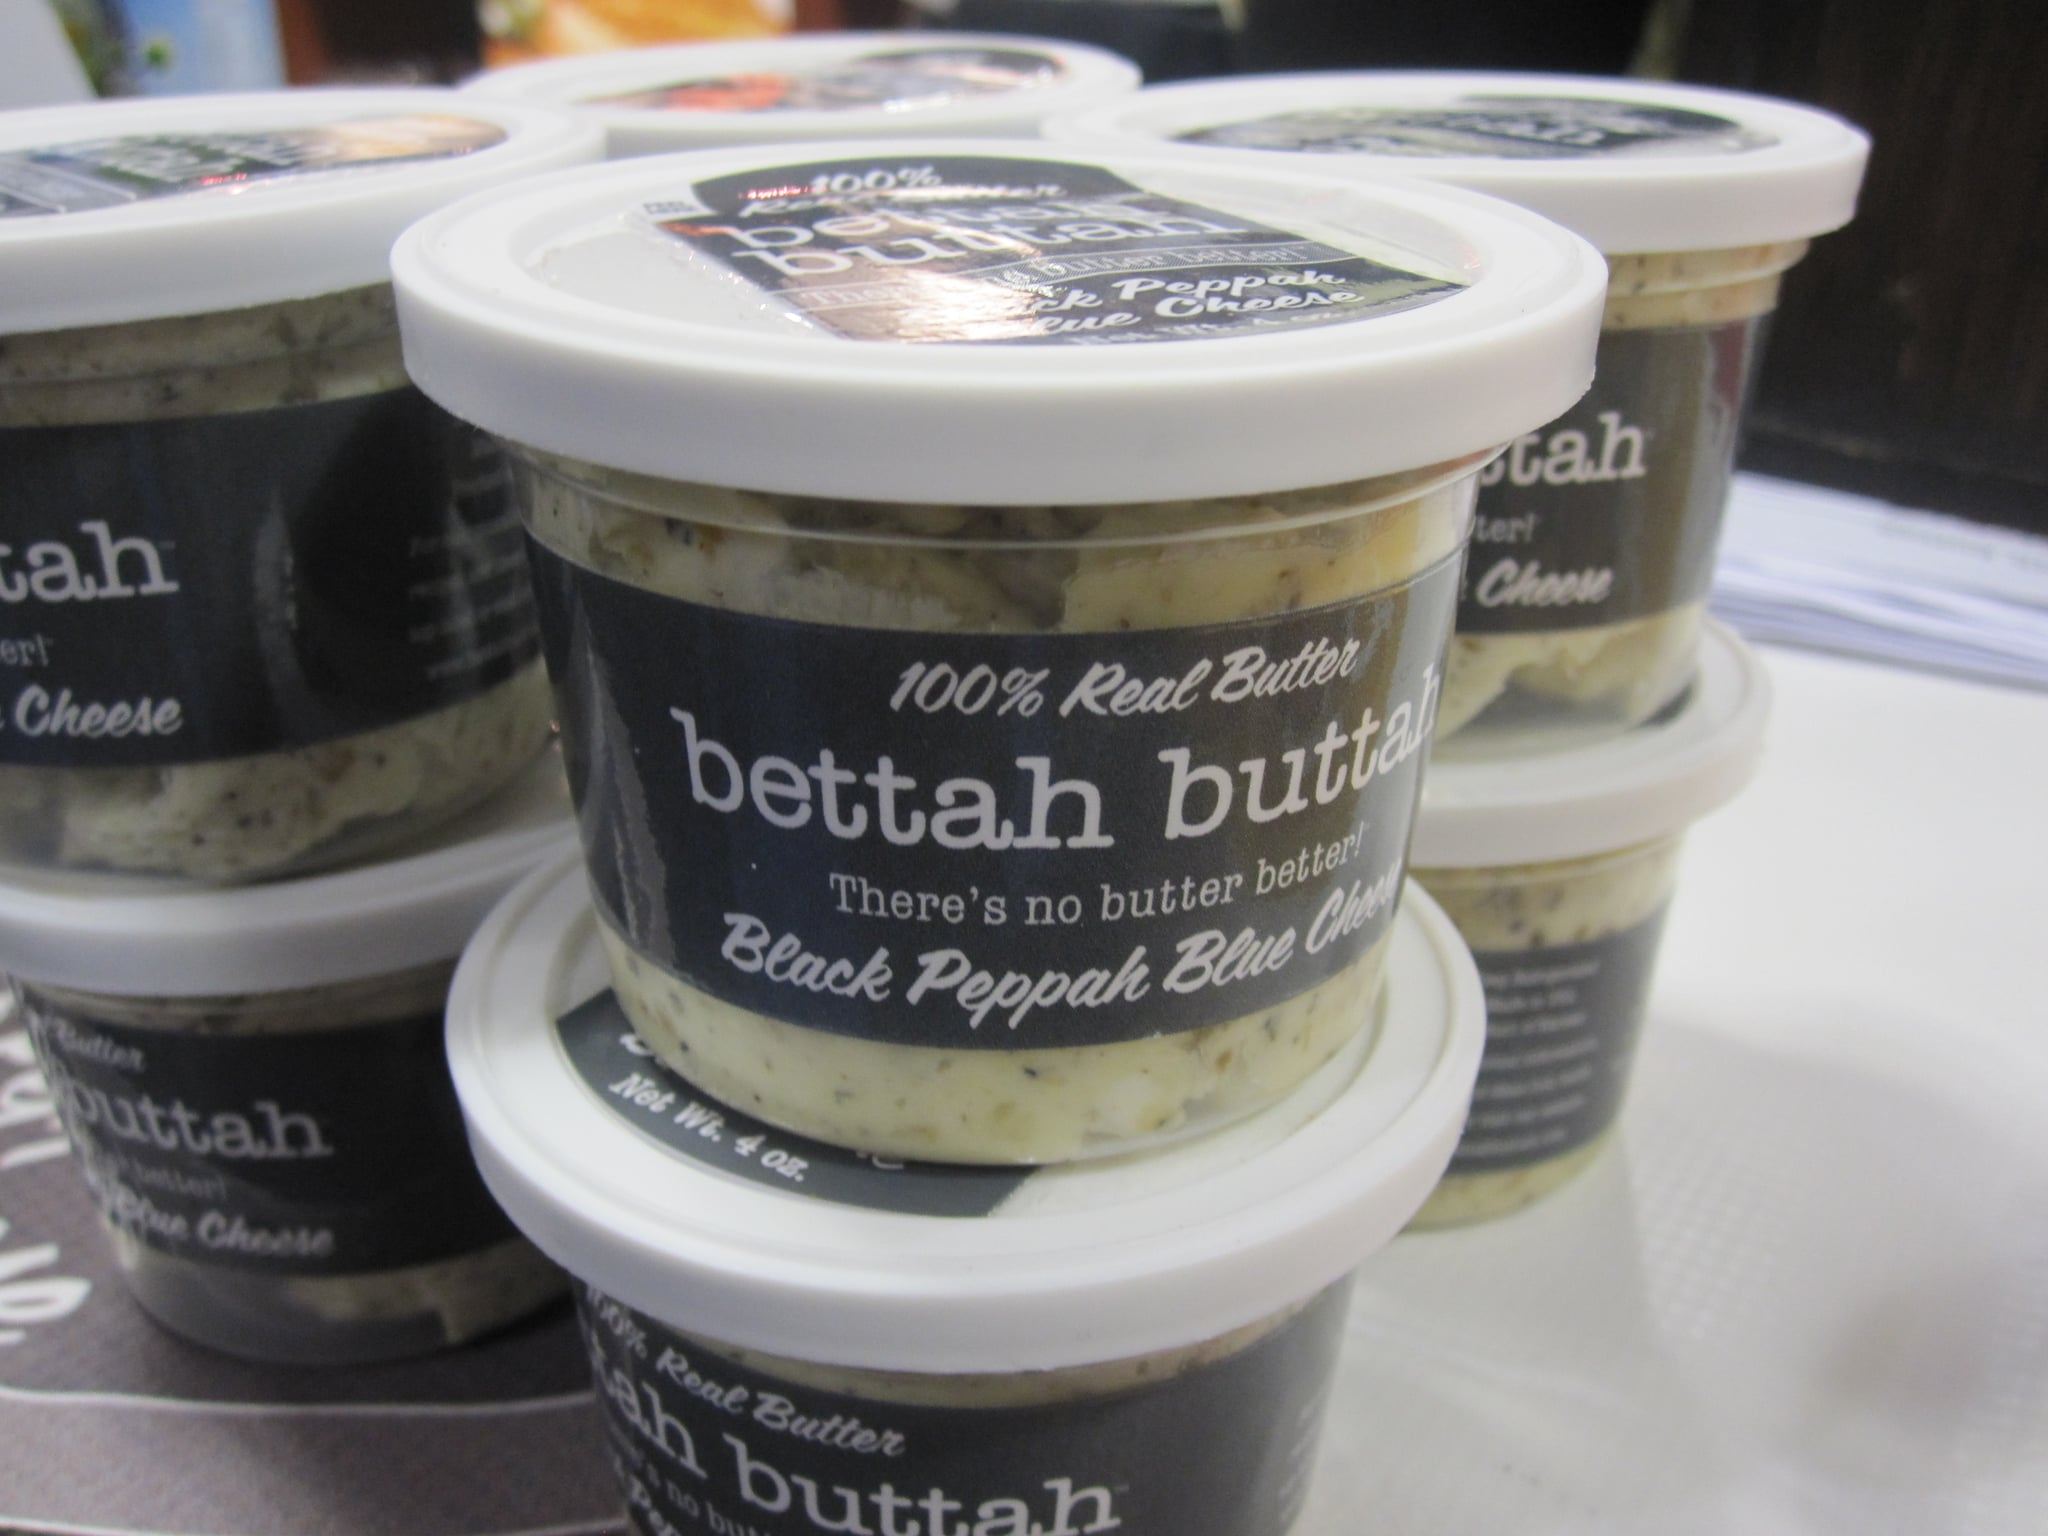 Black Pepper Blue Cheese Butter